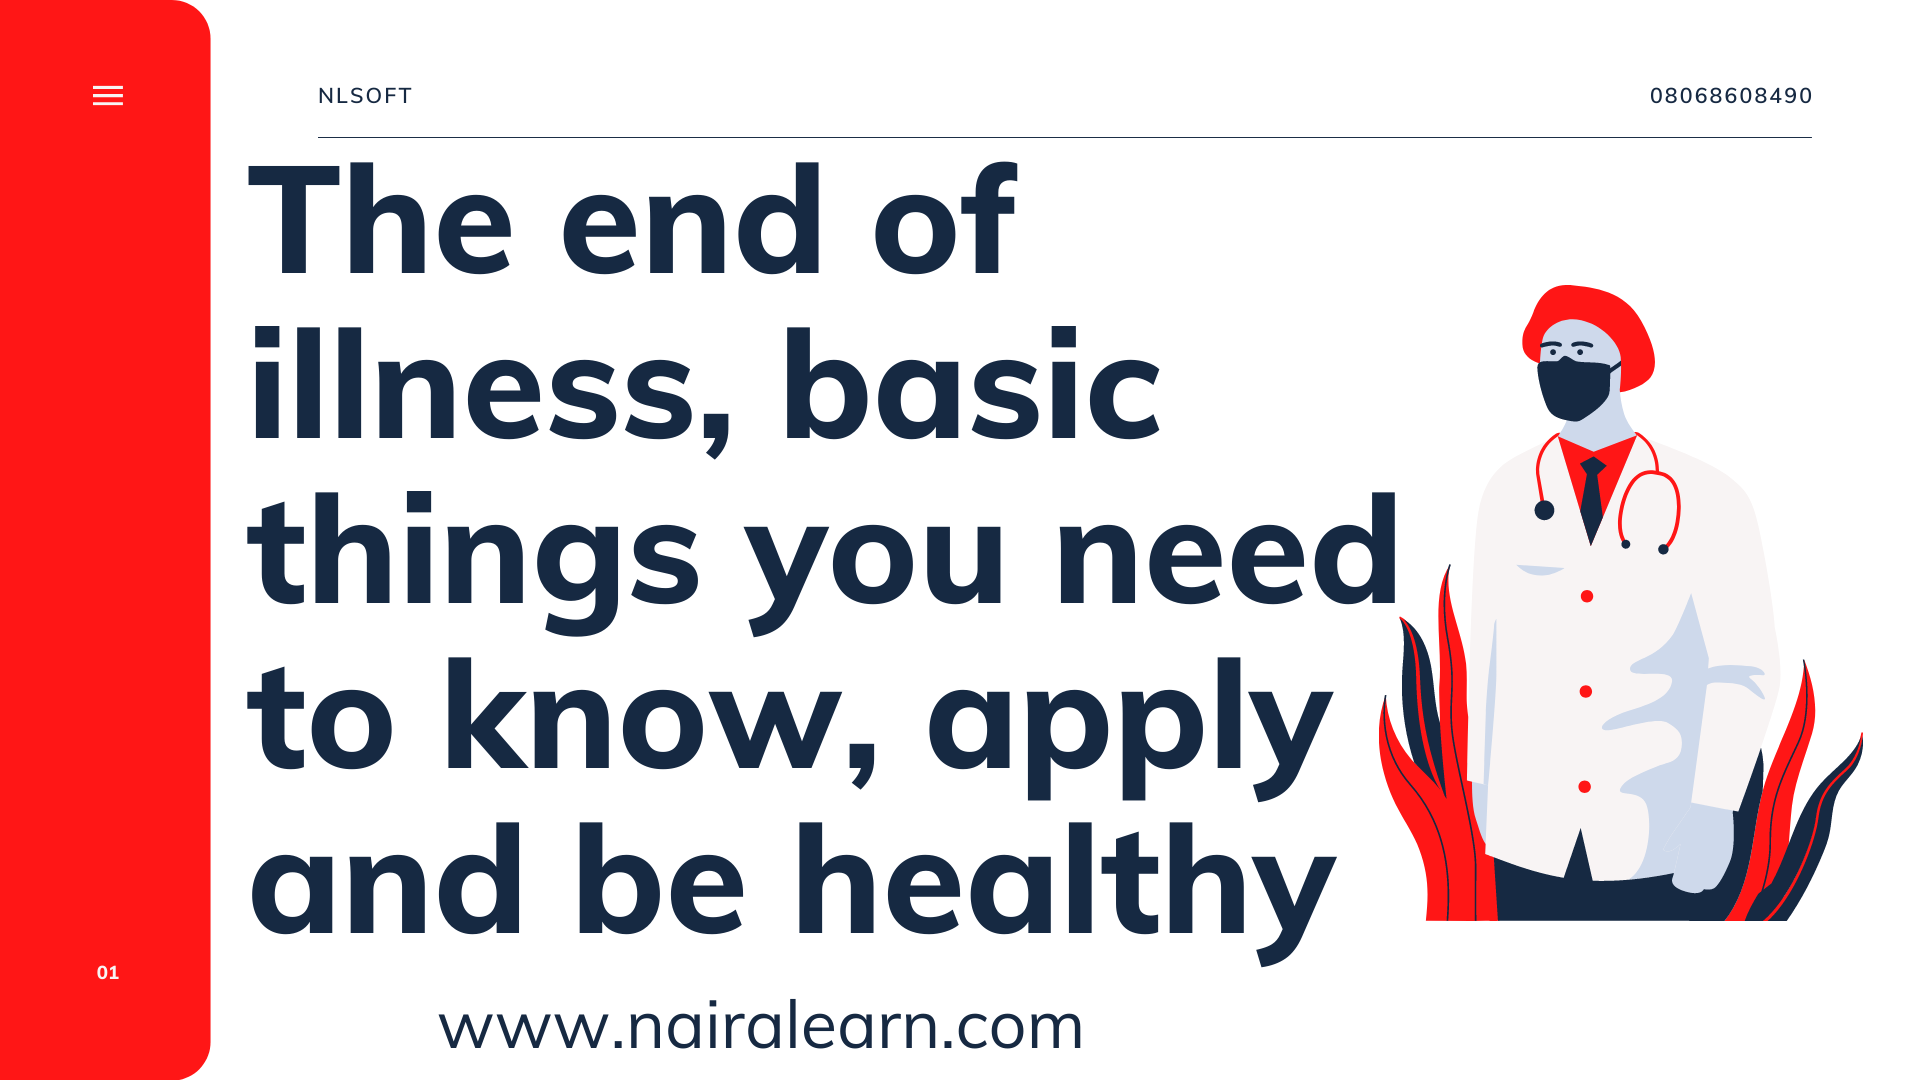 The end of illness, basic things you need to know, apply and be healthy